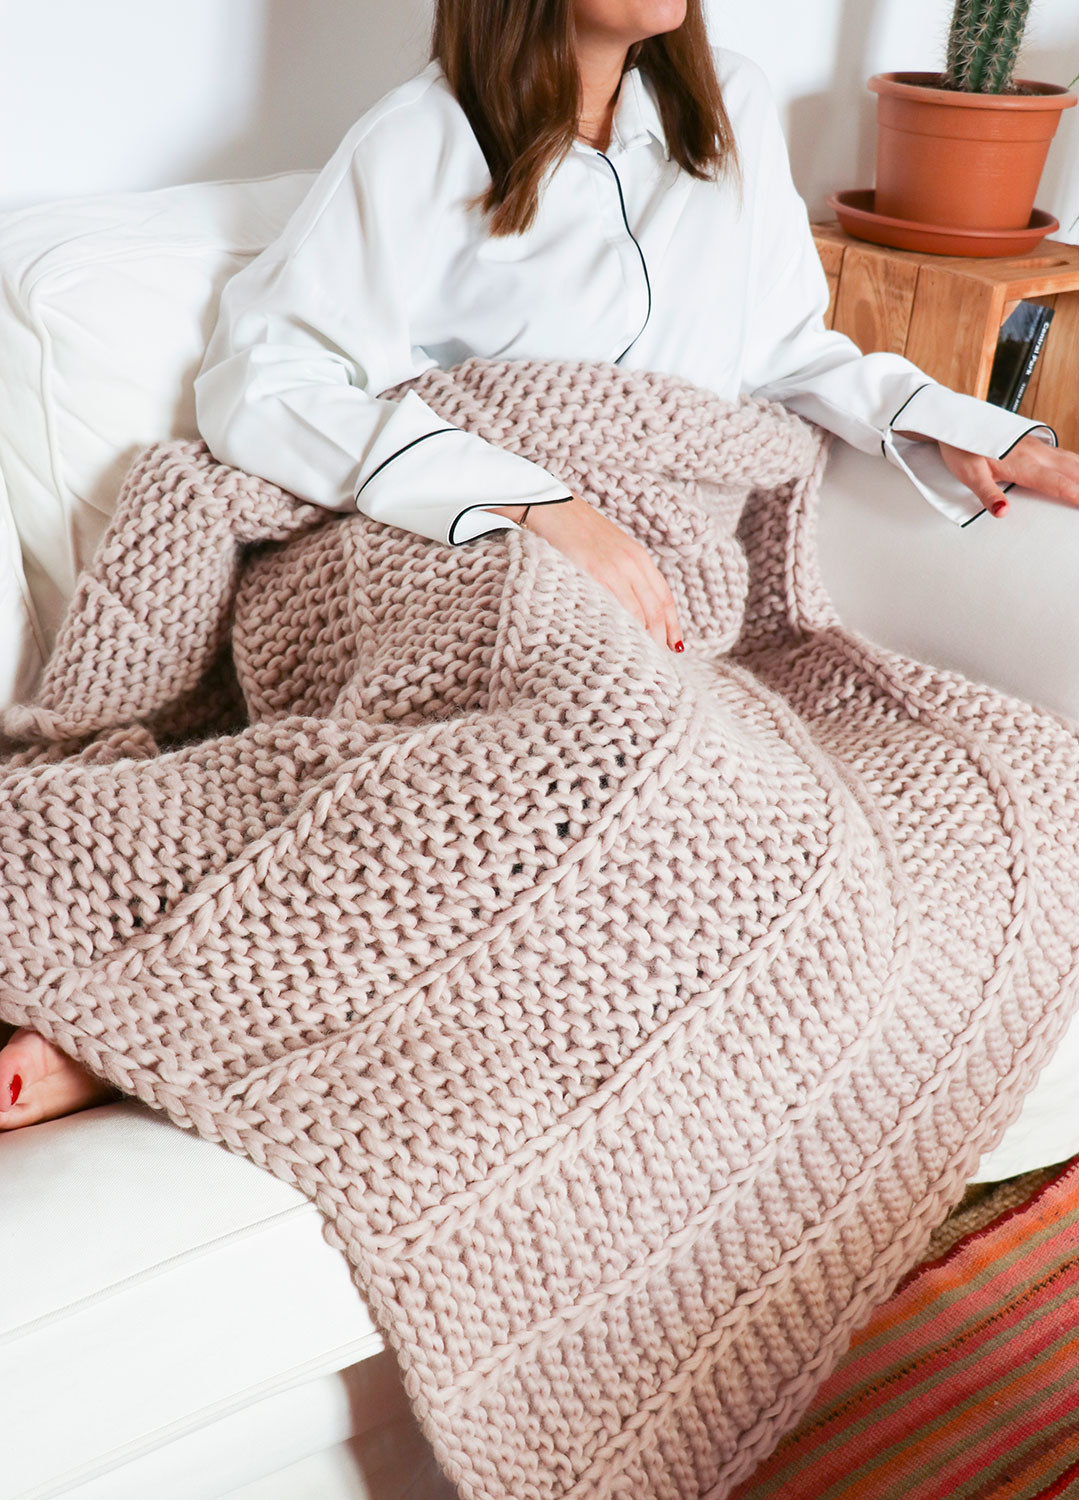 Modl with a large chunky knit blanket in light pink over their lap